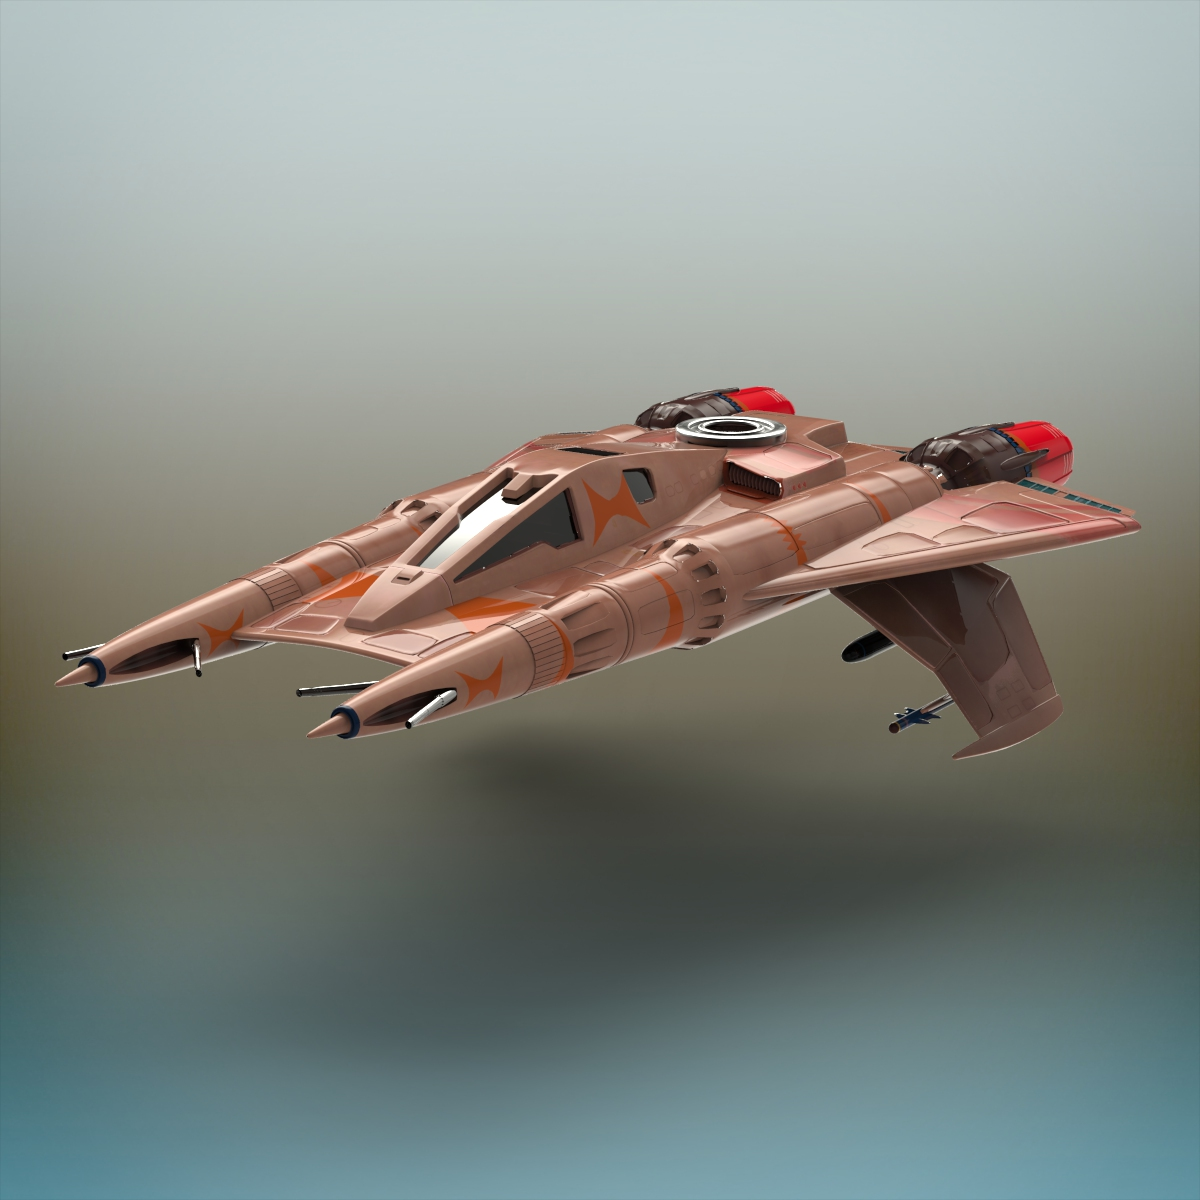 Sci Fi Fighter Images - Reverse Search